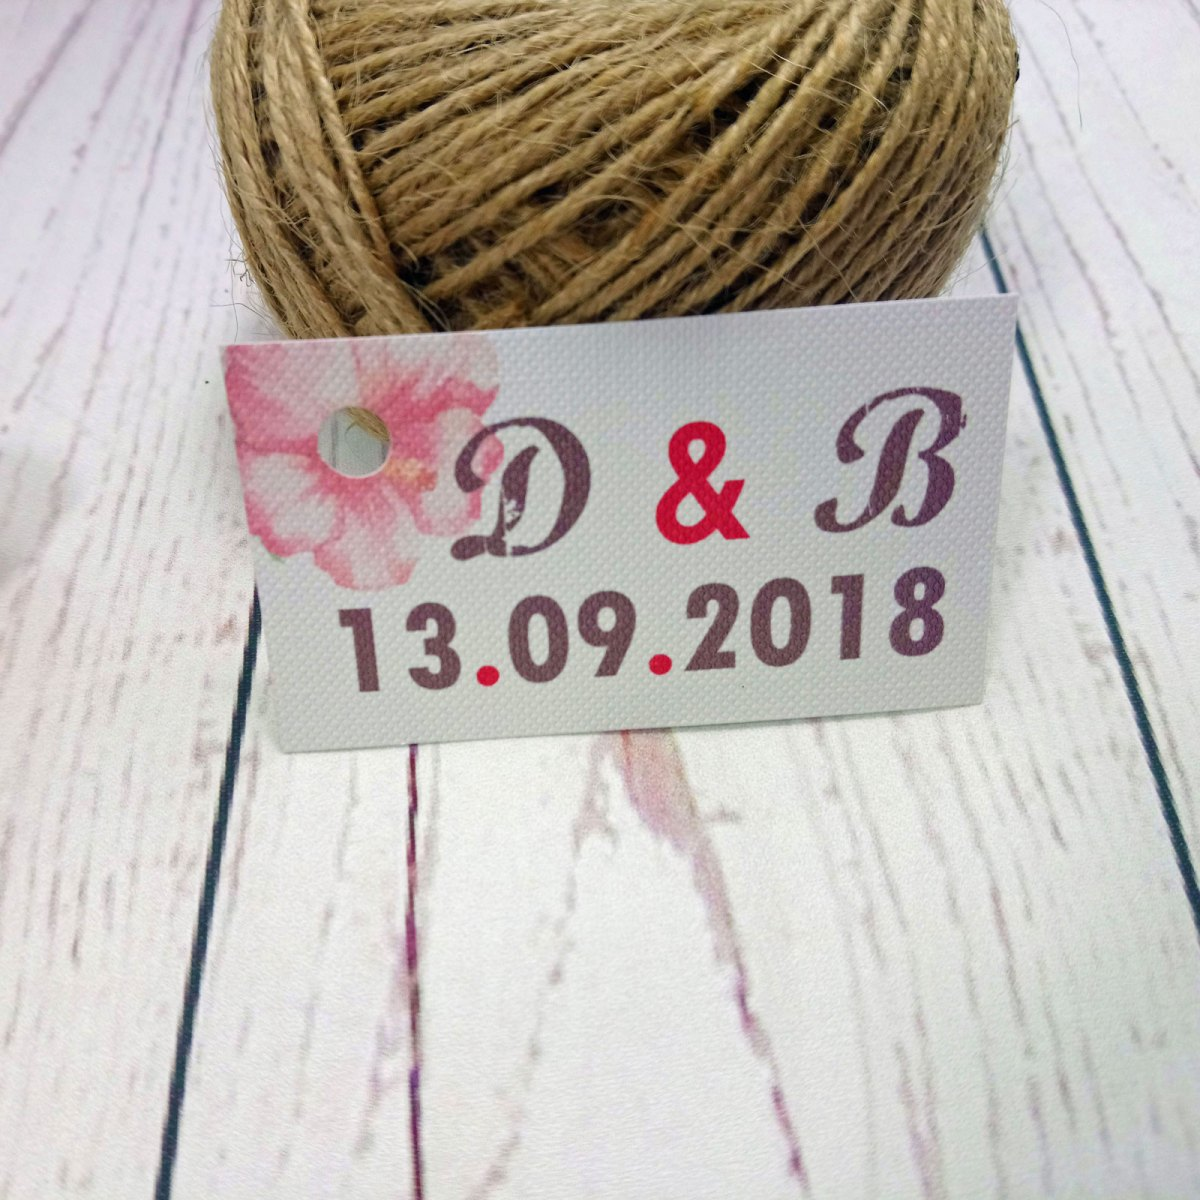 Watercolour Flowers wedding tag with hole punch with bride and groom's initials and wedding date